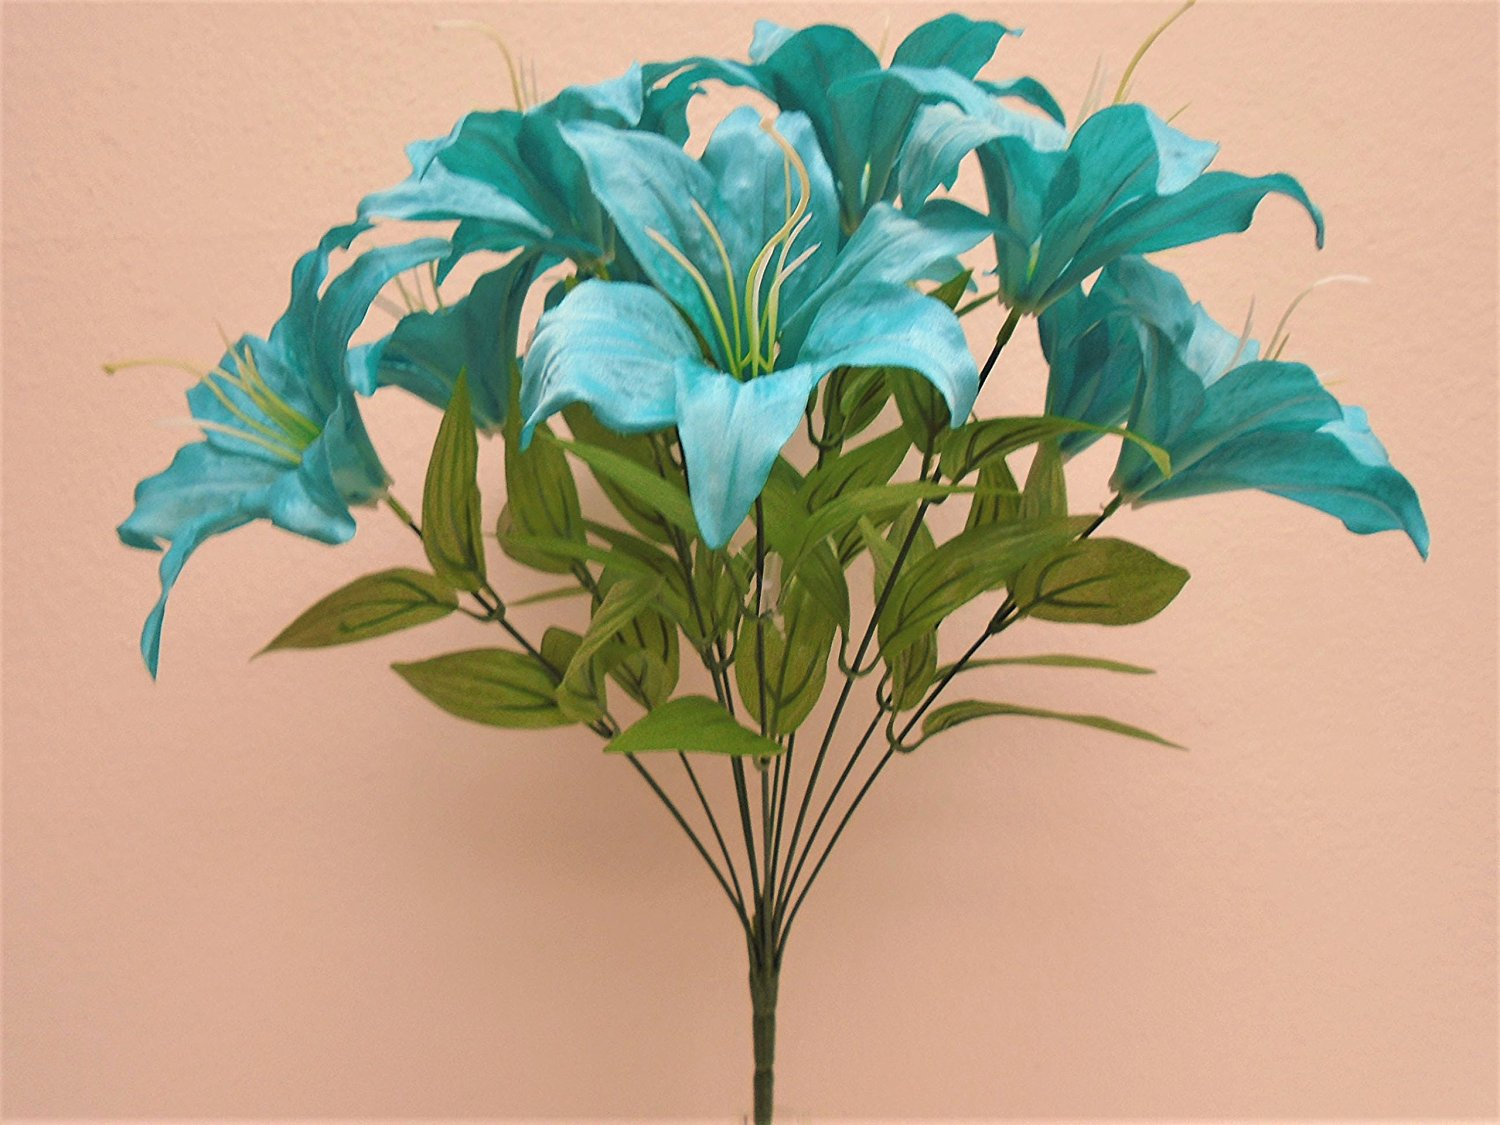 Cheap blue tiger lily find blue tiger lily deals on line at alibaba get quotations turquoise blue tiger lily bush satin 11 artificial flowers 19 bouquet 8225tq izmirmasajfo